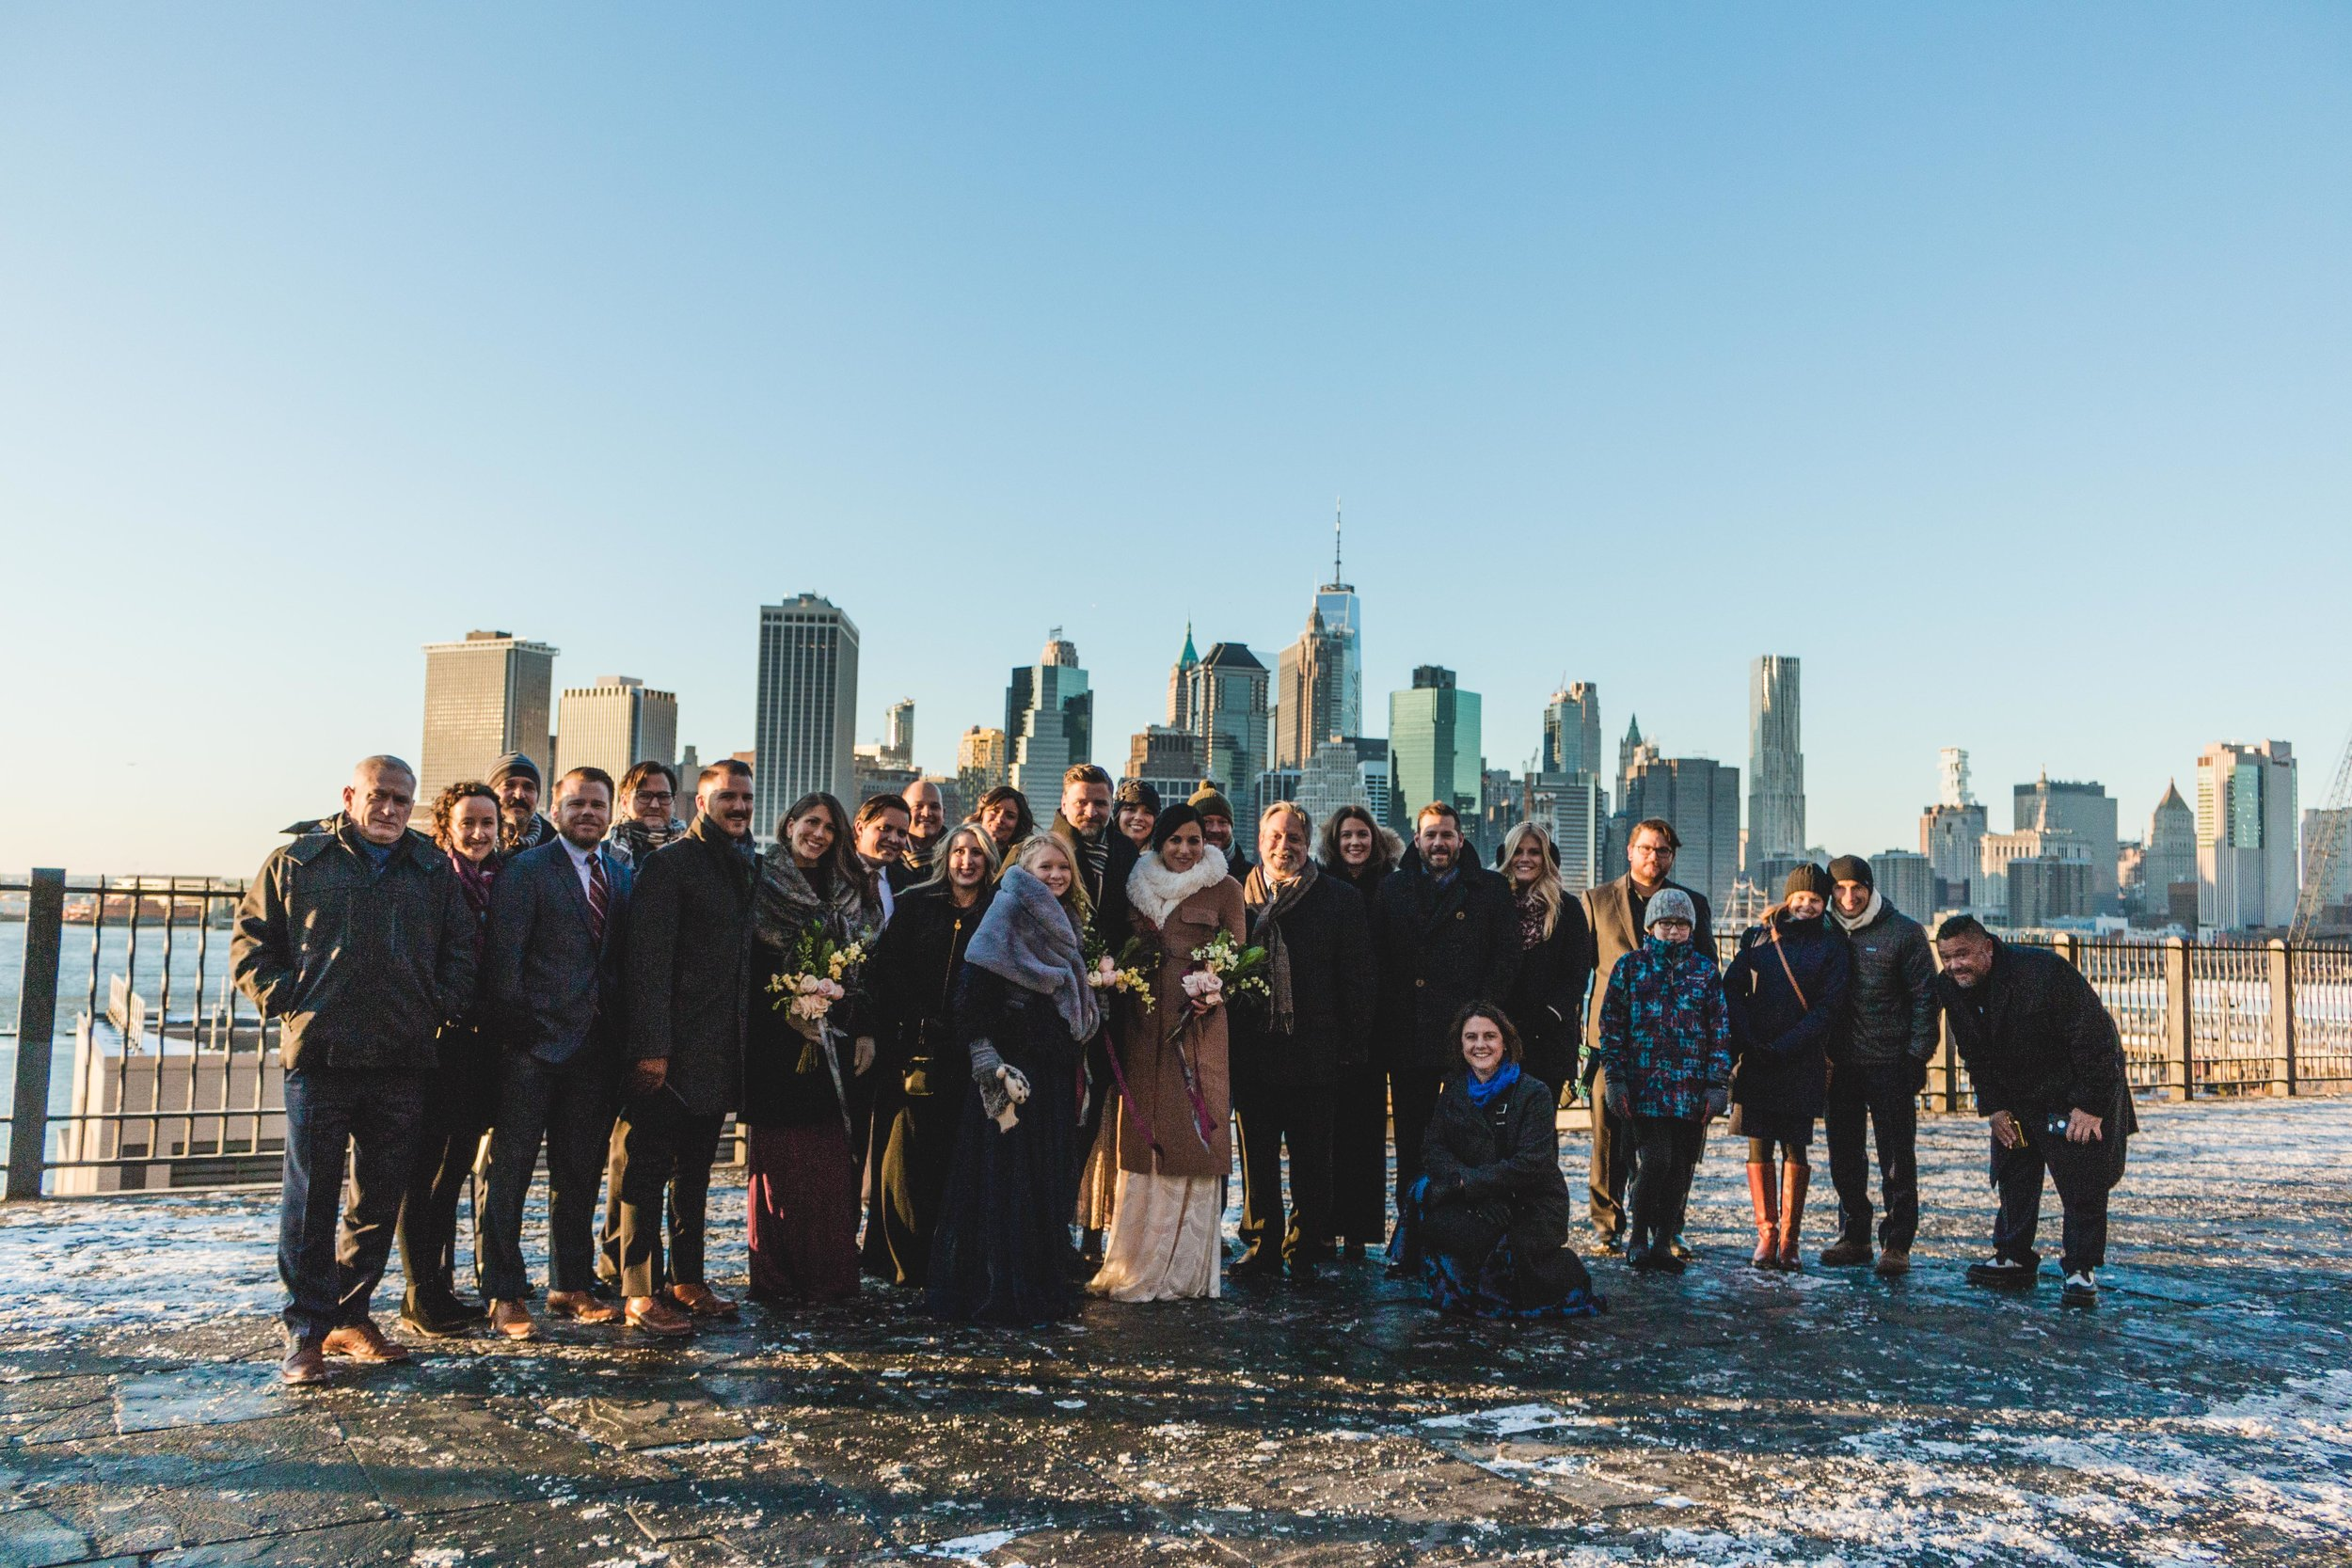 The Whole Gang - Fish / Nagy Wedding December 31st, 2017